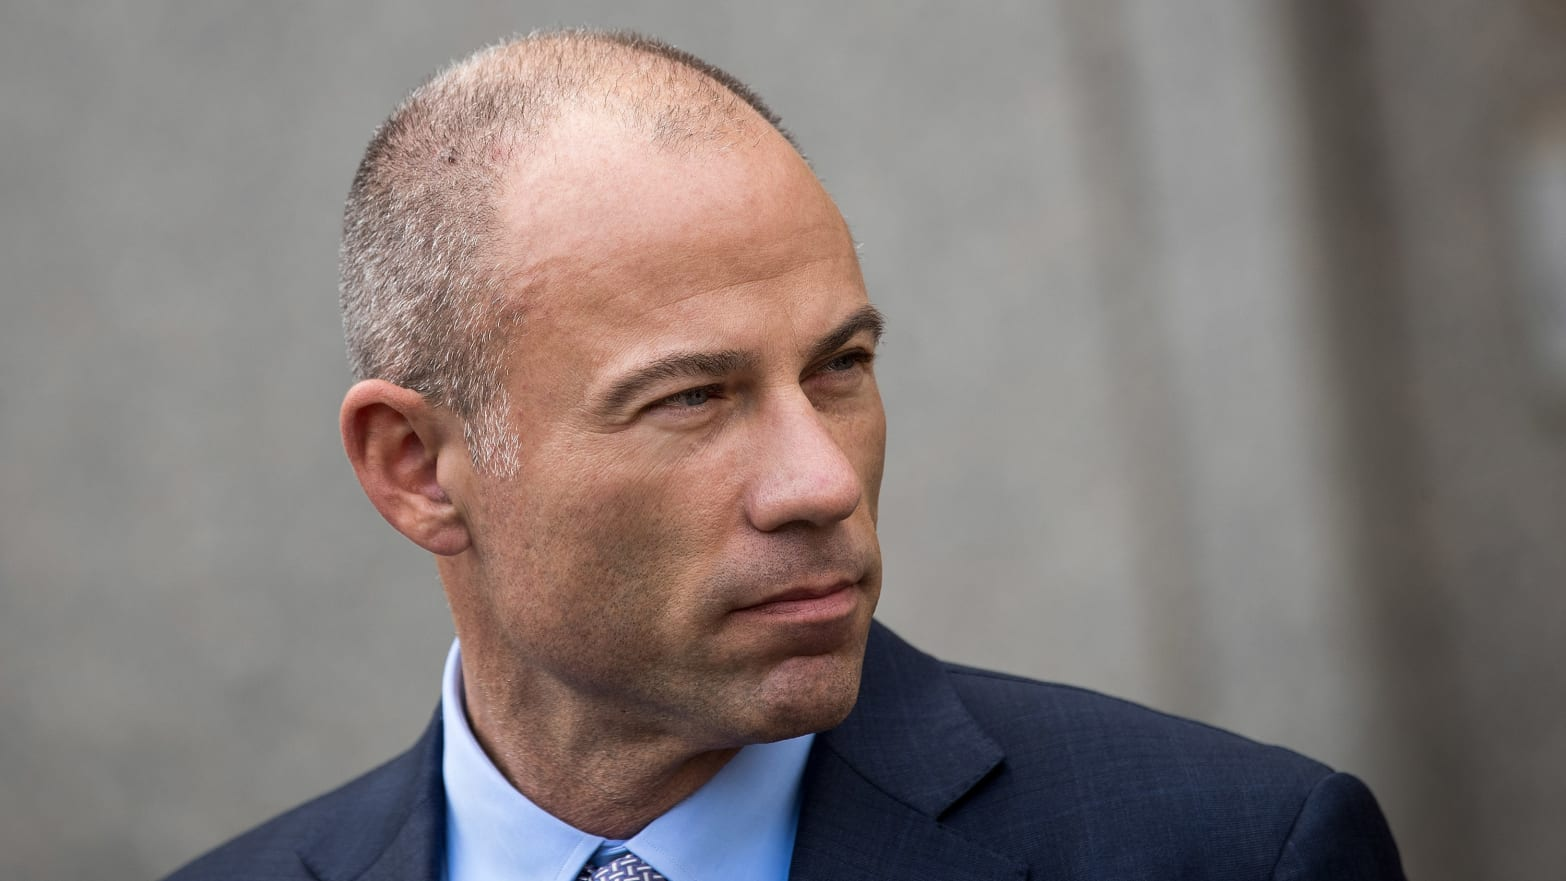 Michael Avenatti, Stormy Daniels Lawyer, Arrested on Fraud Charges